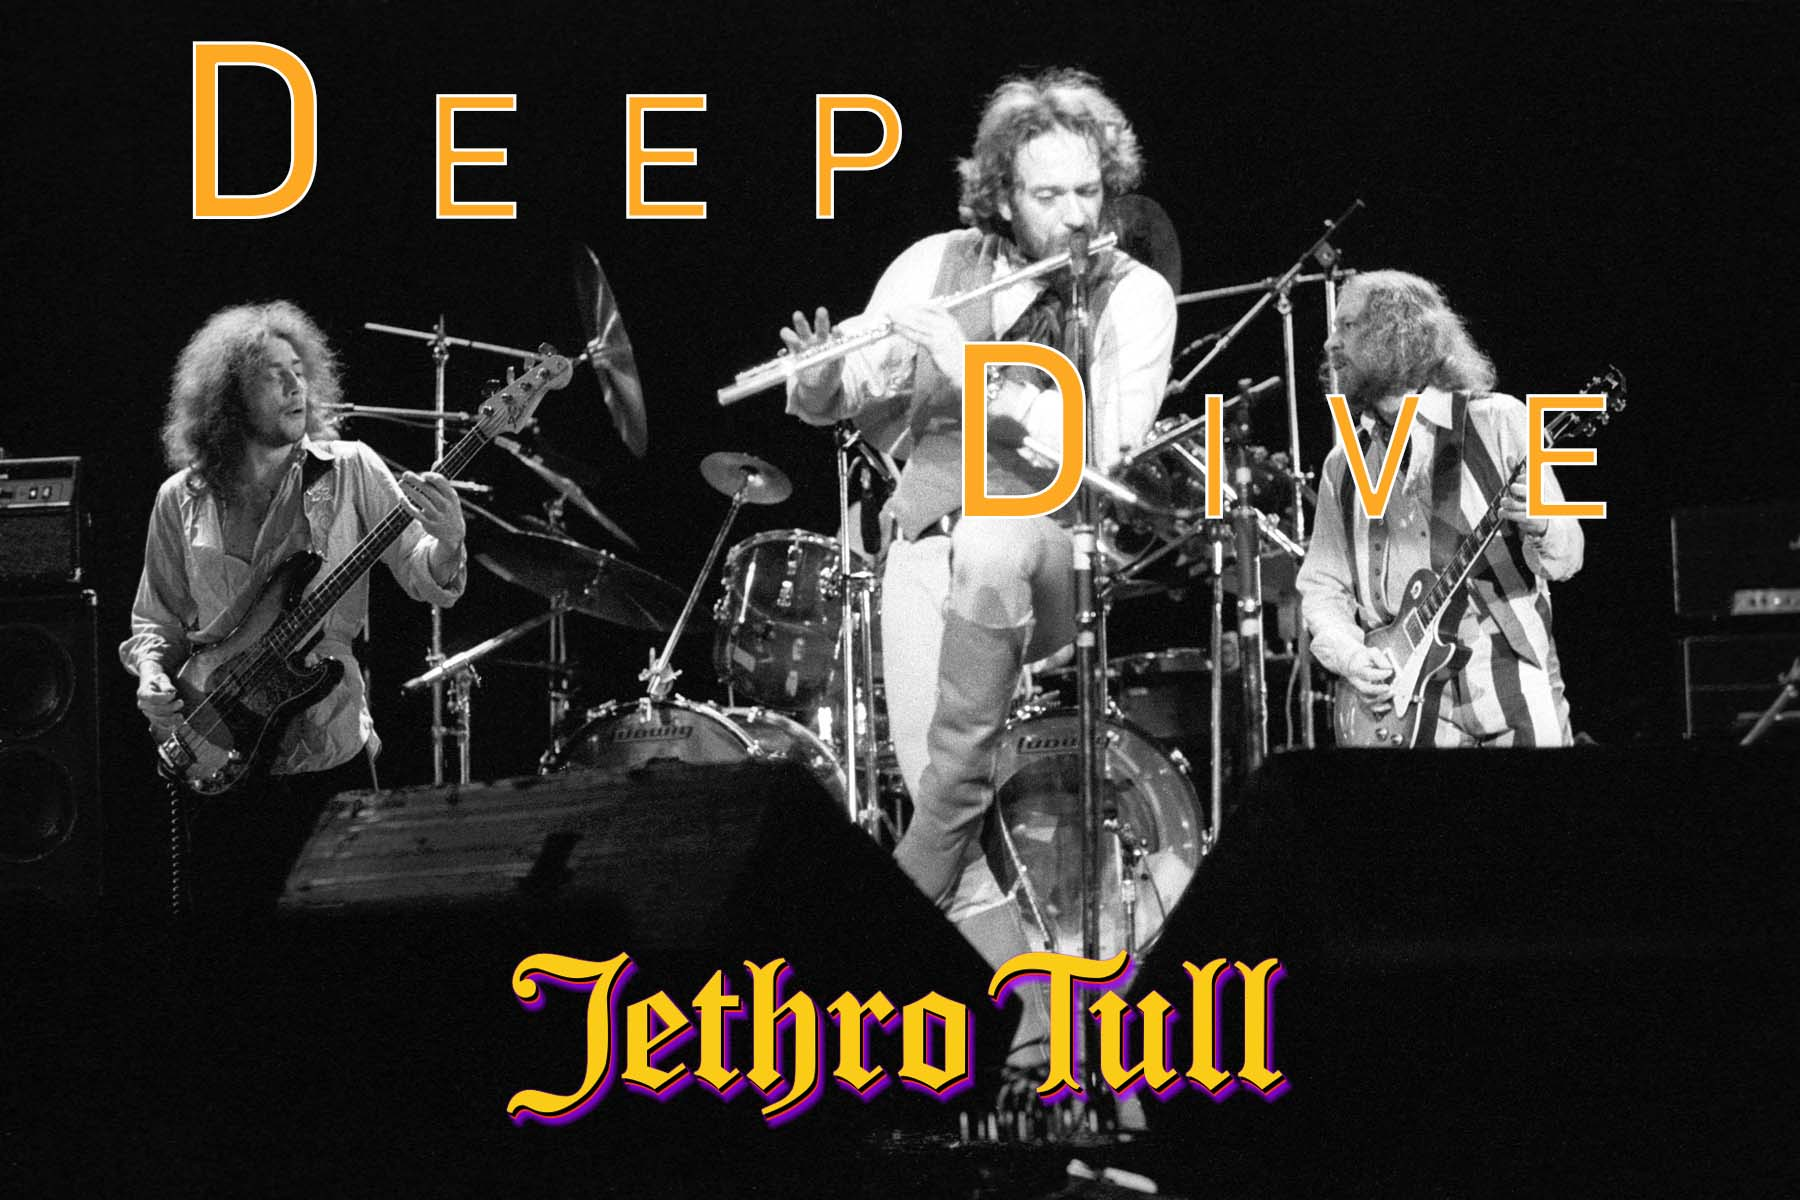 Jethro Tull in concert at the Hammersmith Odeon, London, UK - 11 Feb 1977